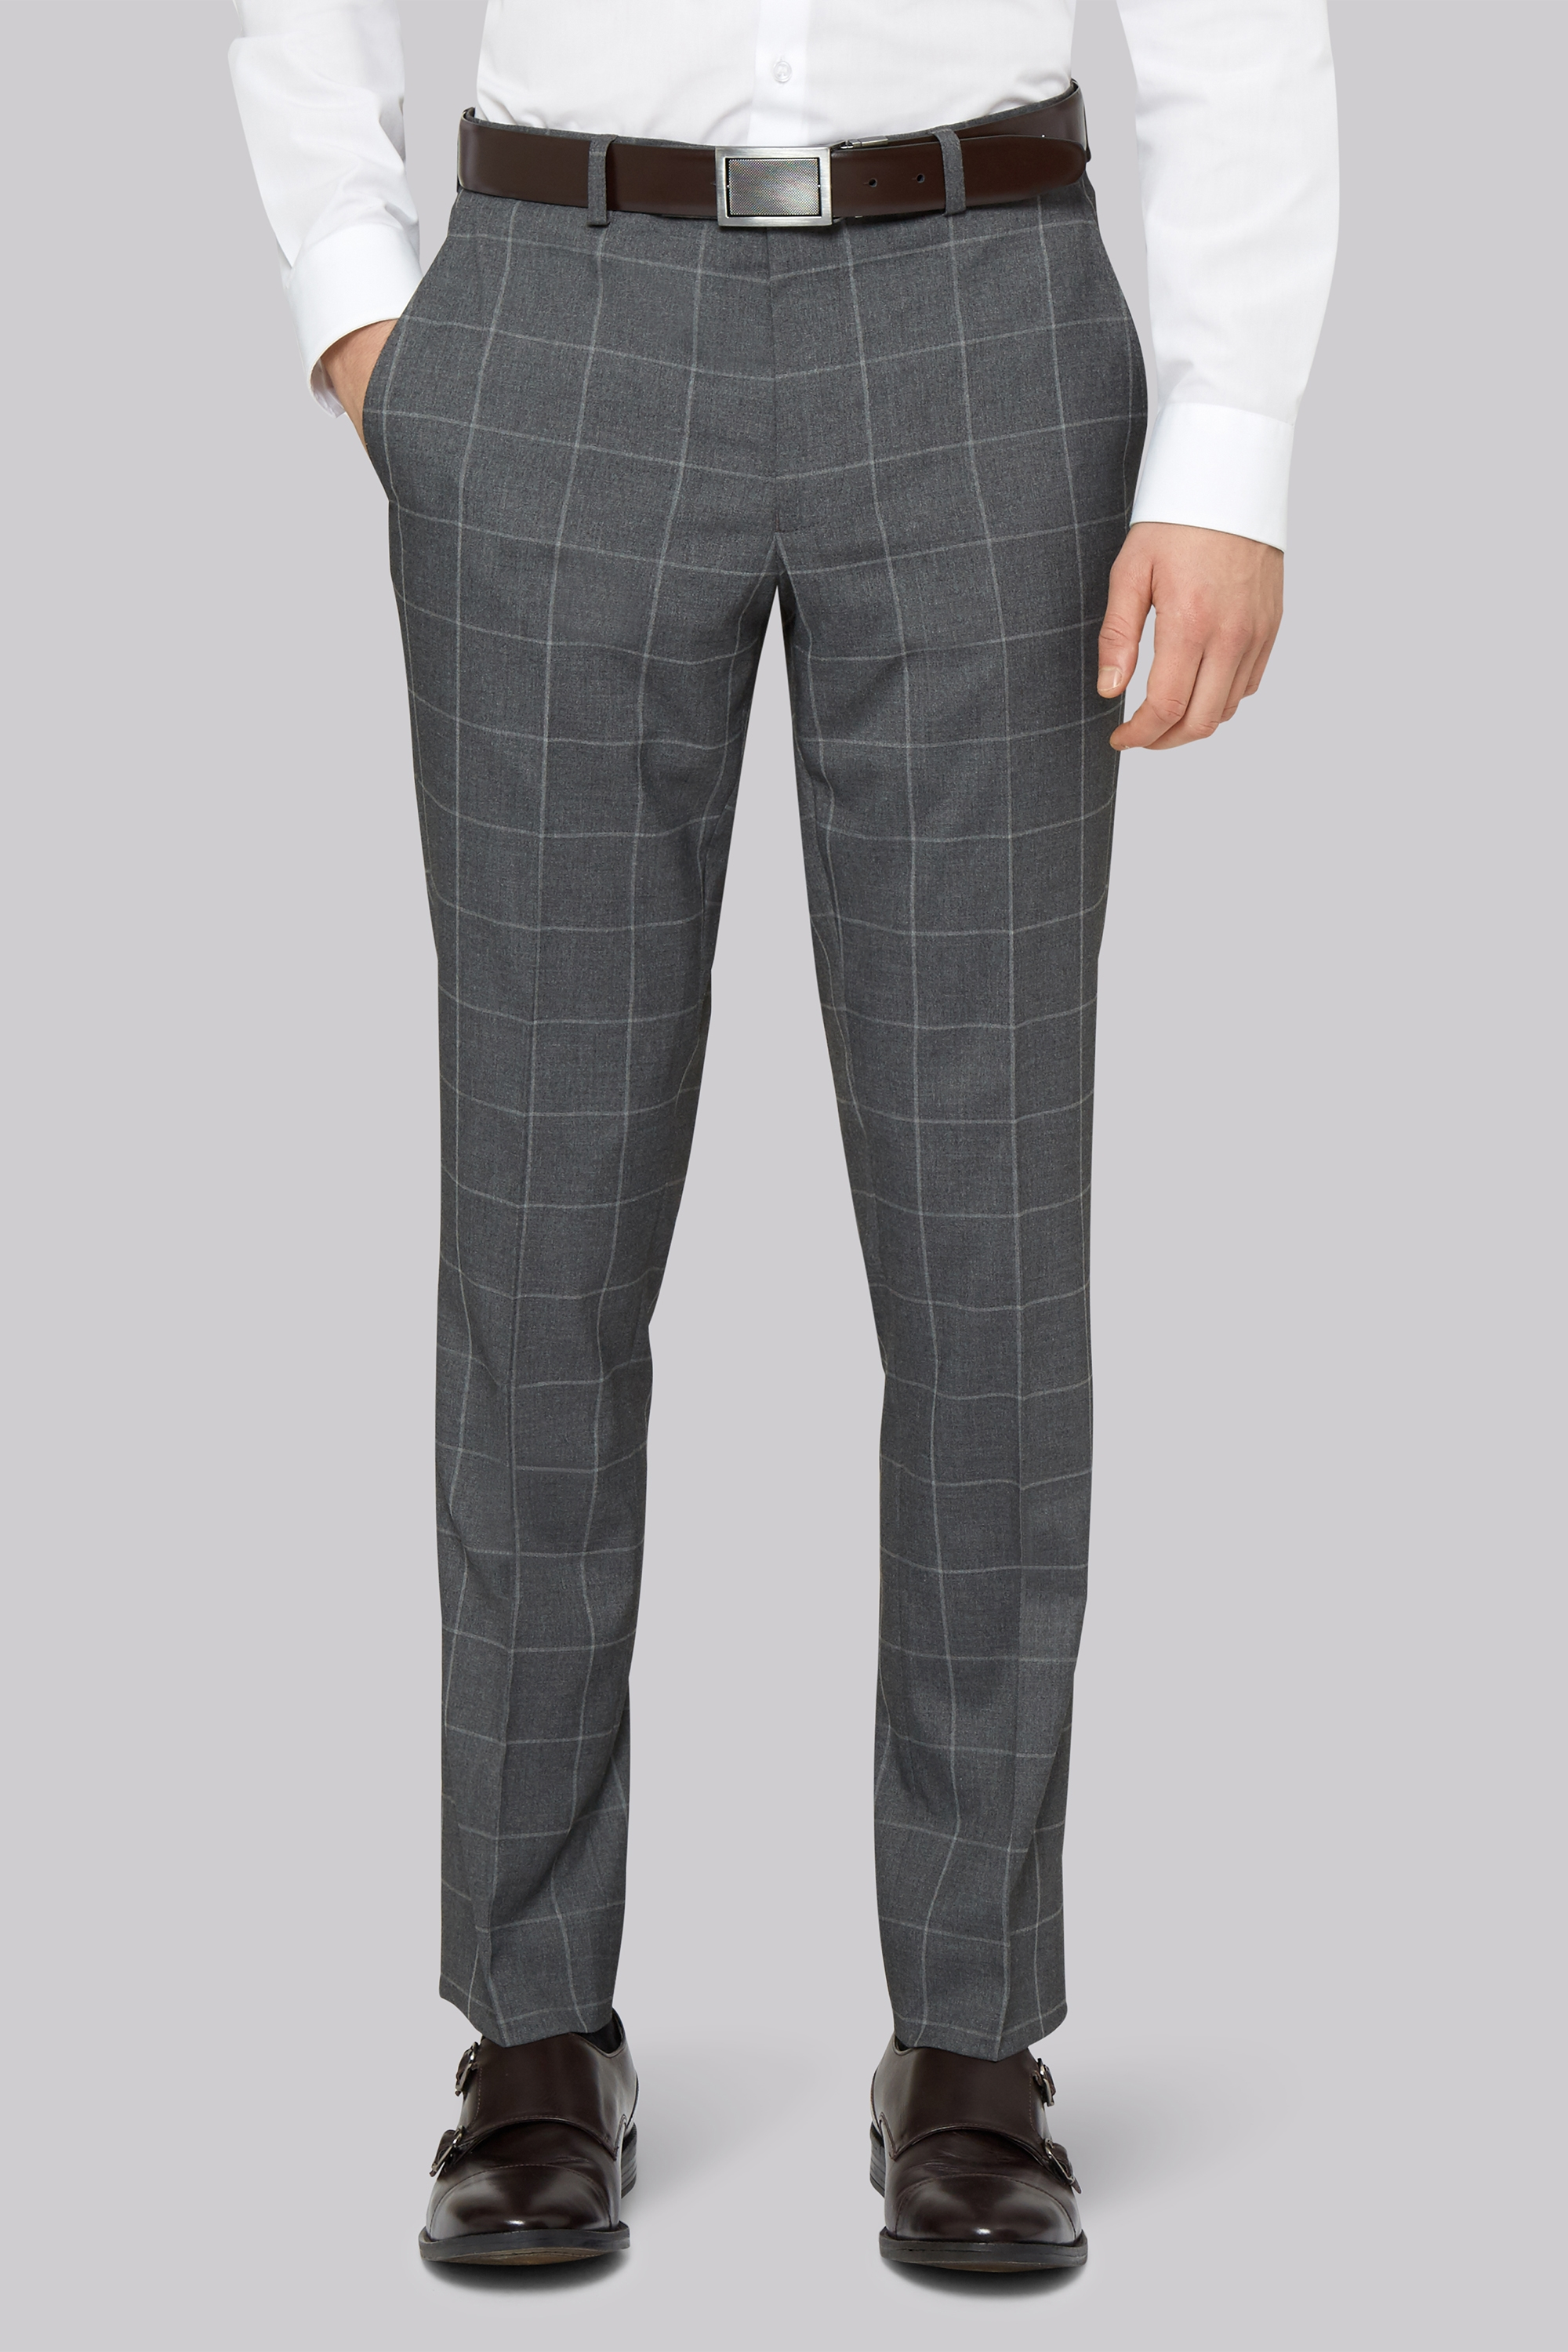 93fd7374b7bd Moss London Skinny Fit Grey Check Trousers ...